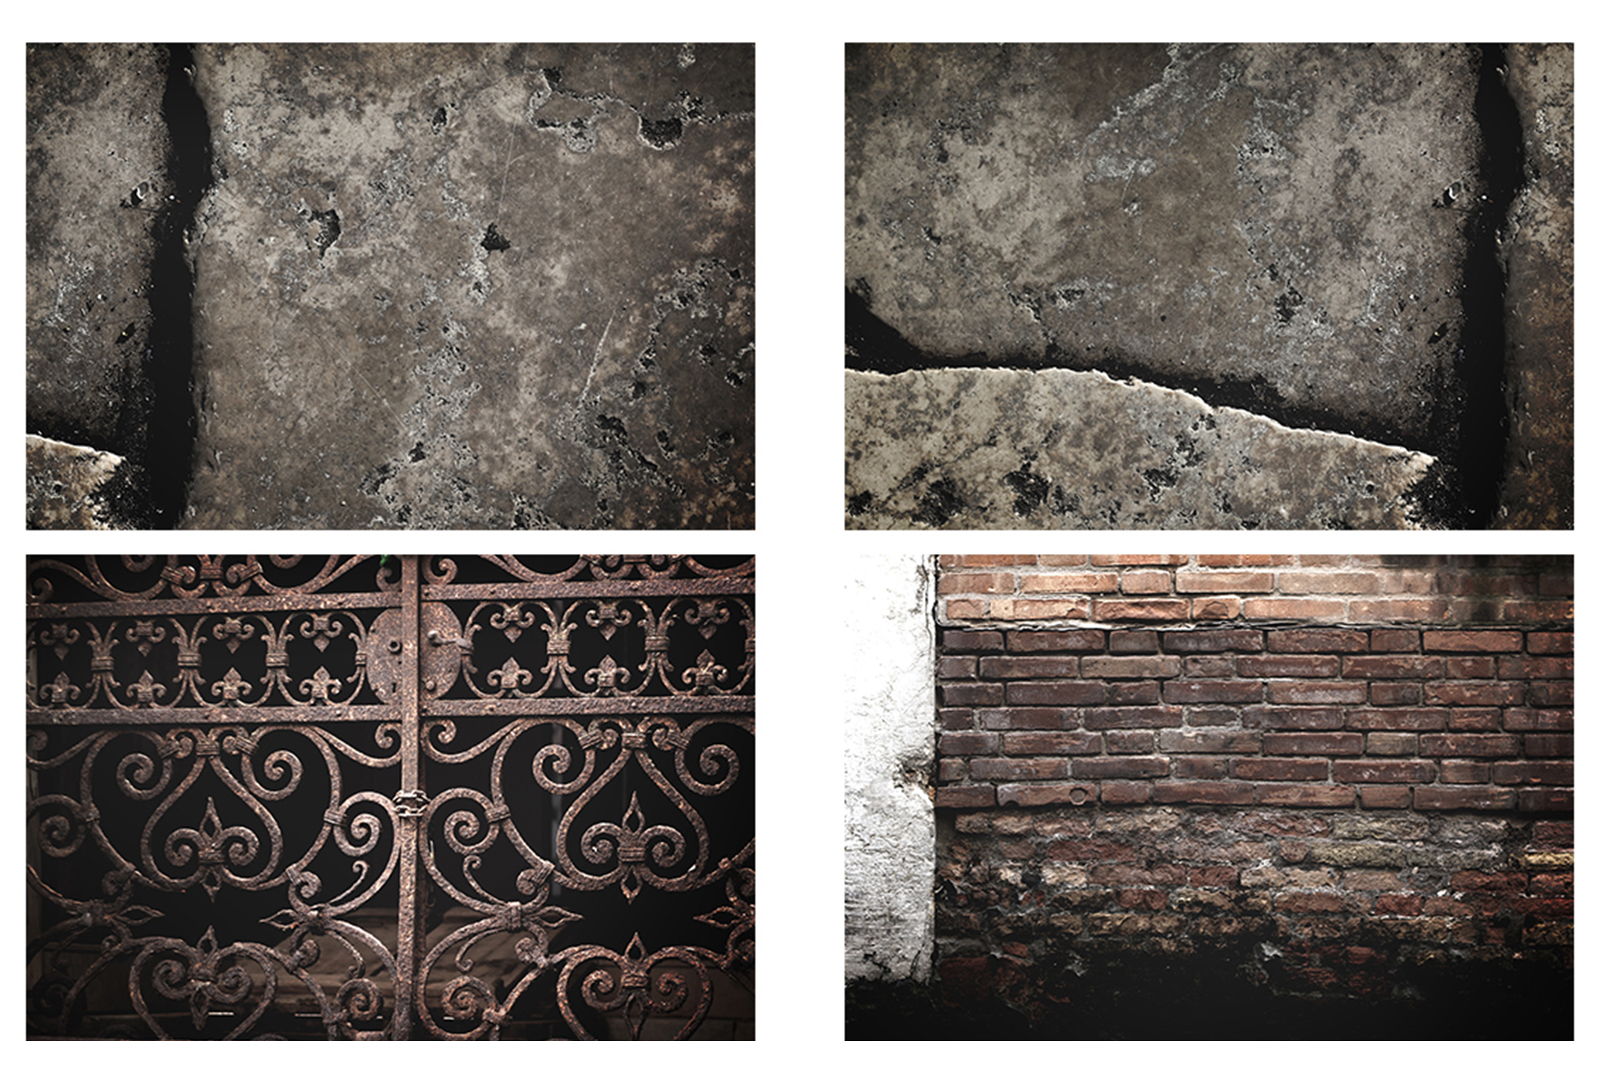 100 Textures of Italy Graphic Textures By Najla Qamber - Image 10